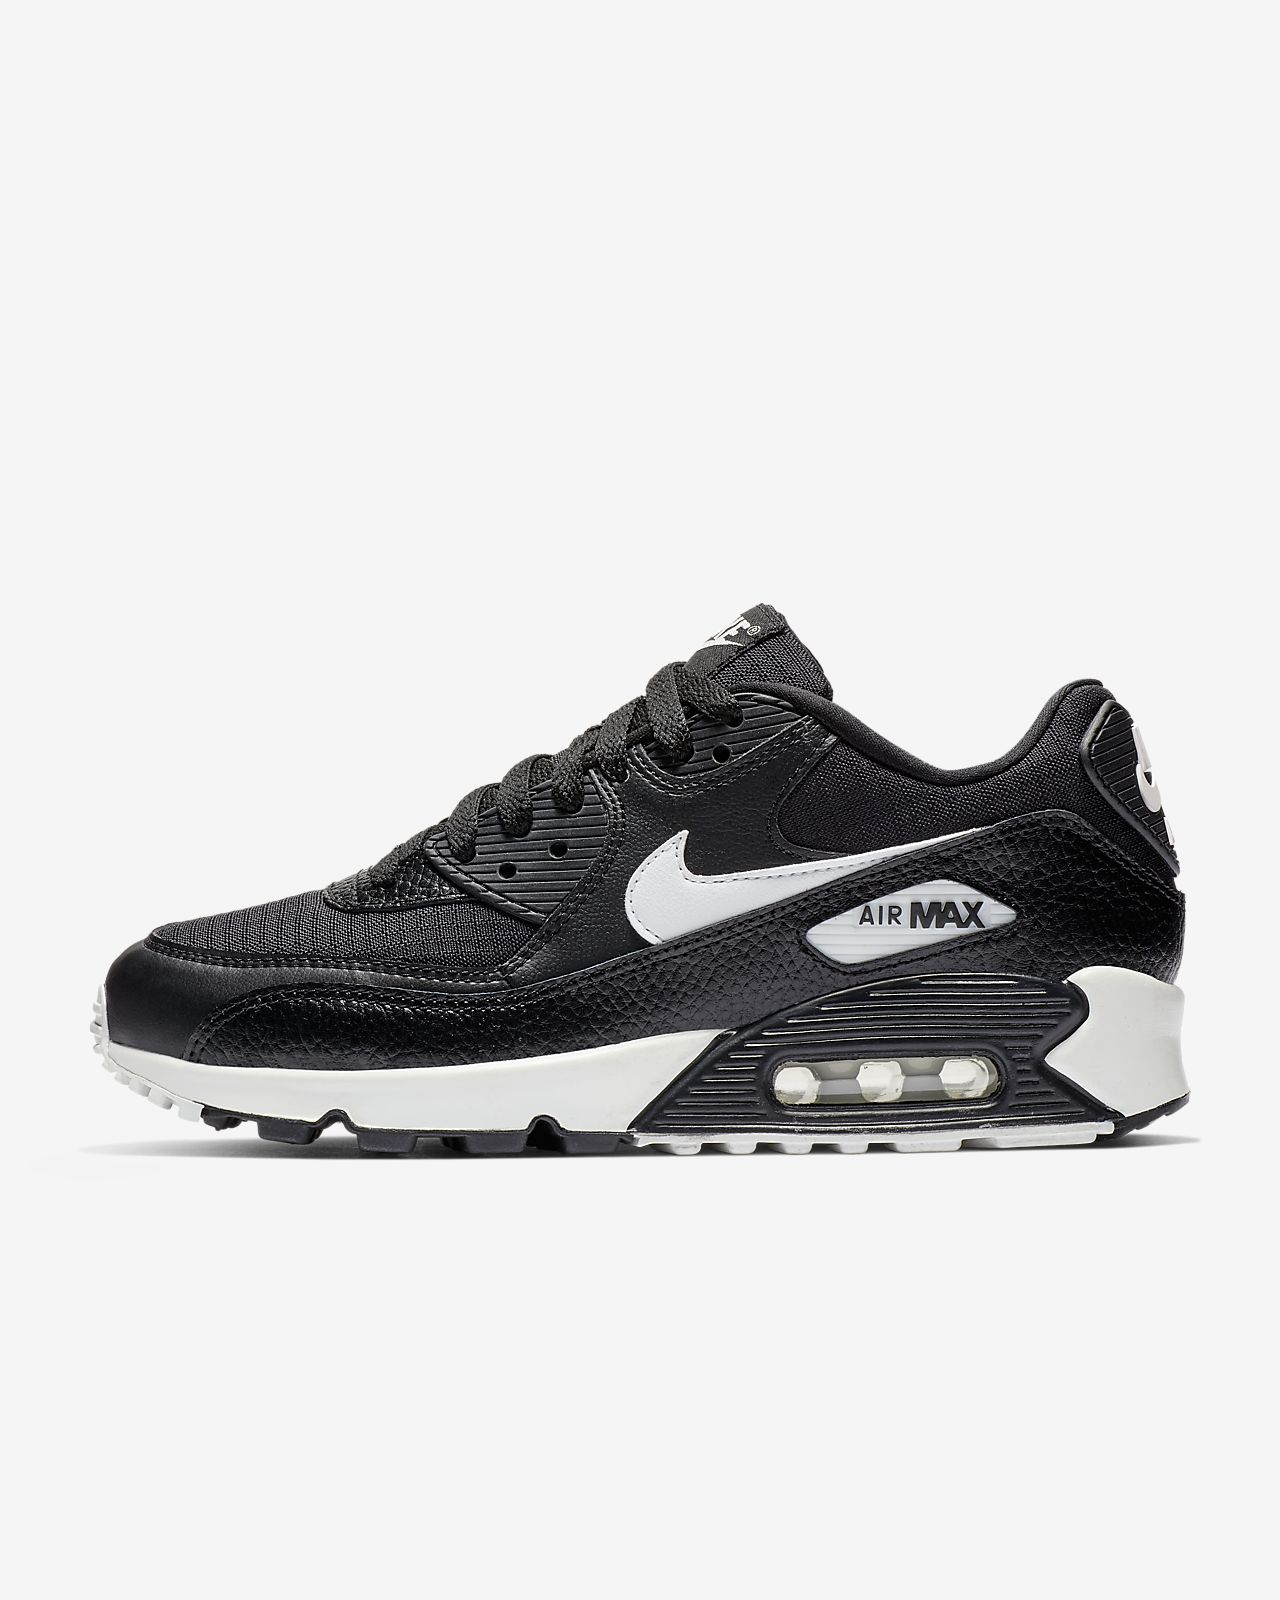 check out 72e82 76145 Nike Air Max 90 Women s Shoe. Nike.com AU